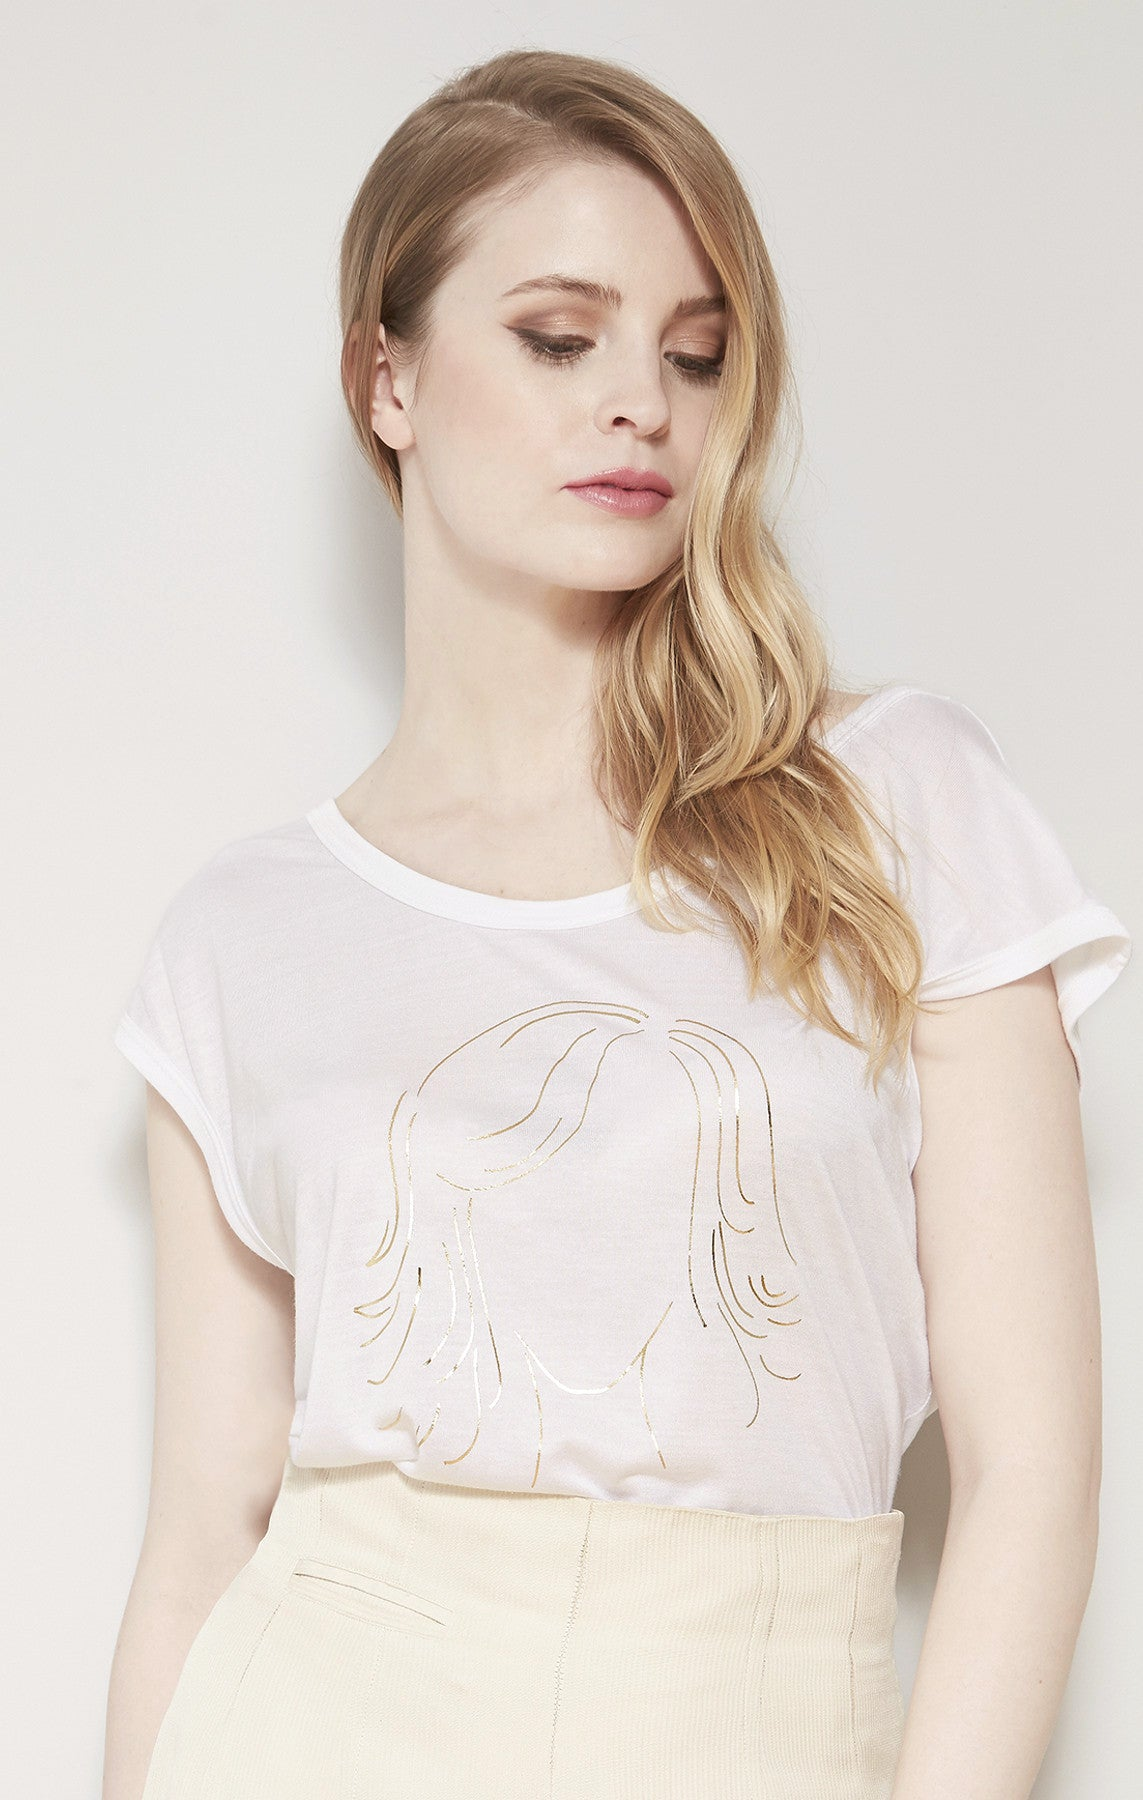 Gold Faceless Girl Graphic T-Shirt White